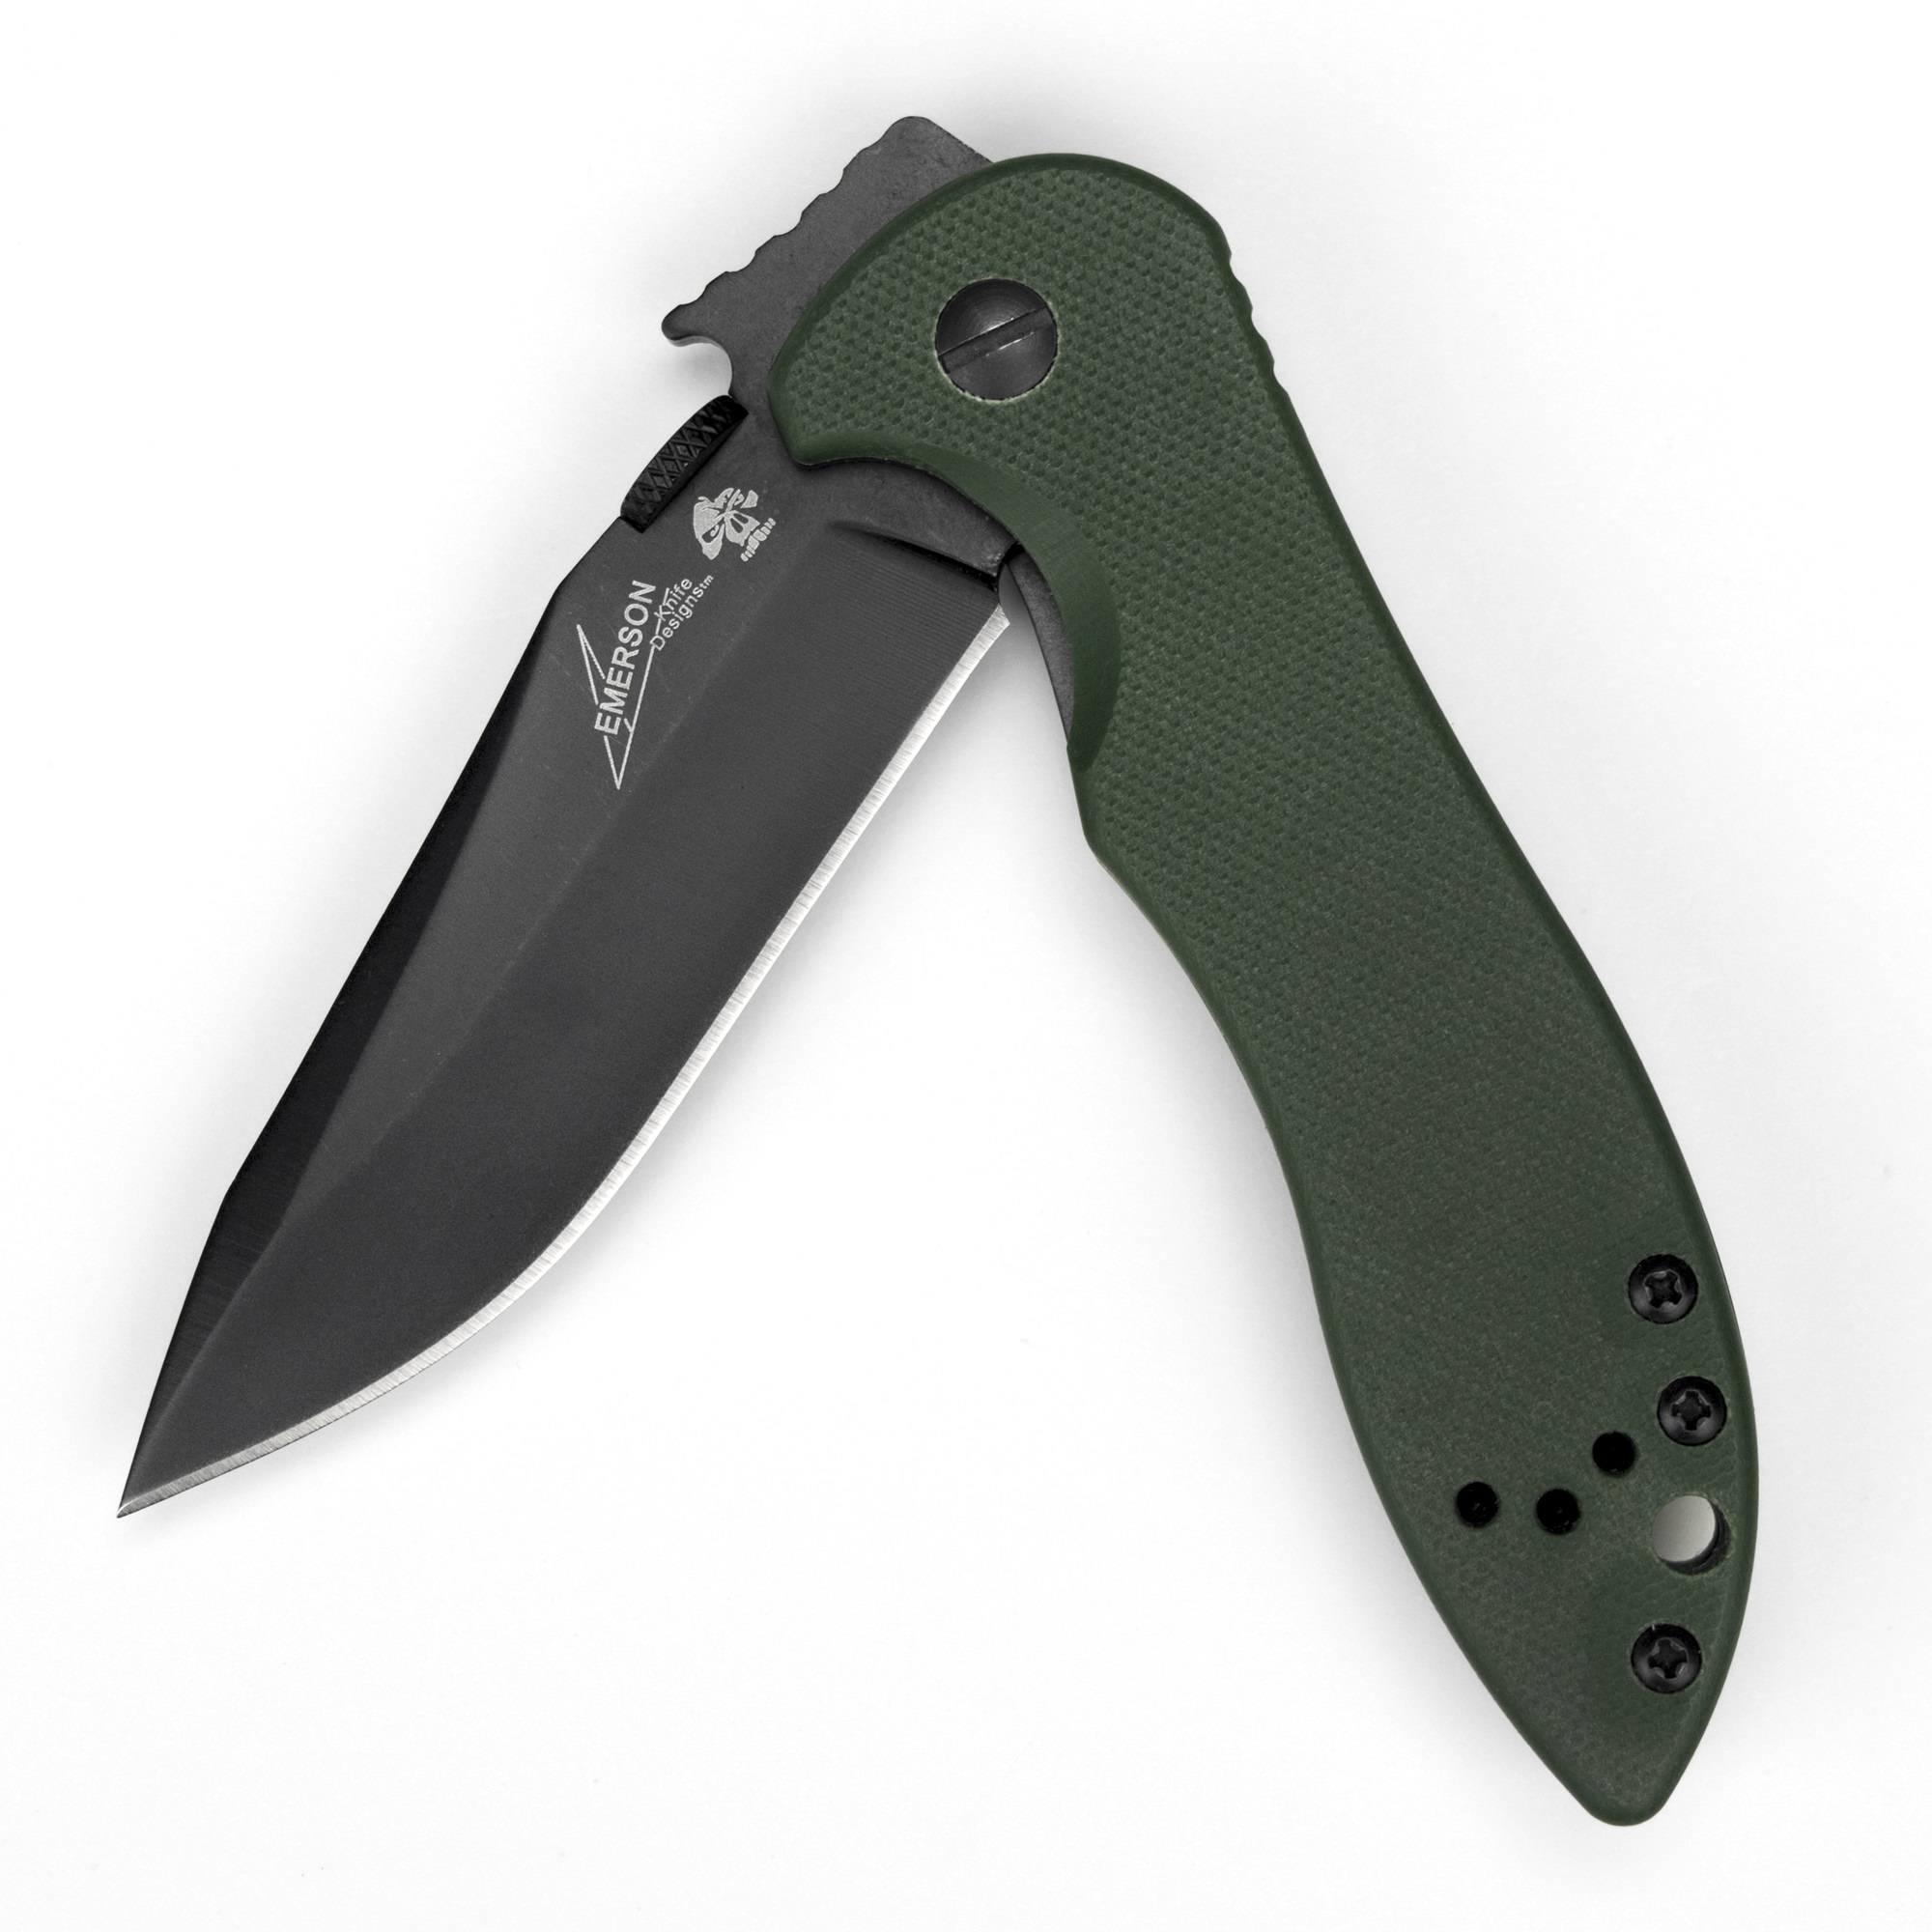 Kershaw CQC-5K (6074OLBLK); 3 In. 8Cr14MoV Stainless Steel Blade with Black-Oxide Coating and Textured Olive Drab G-10 Handle Scales, Wave-Shaped Opening System and Reversible Pocketclip, 3.7 OZ.